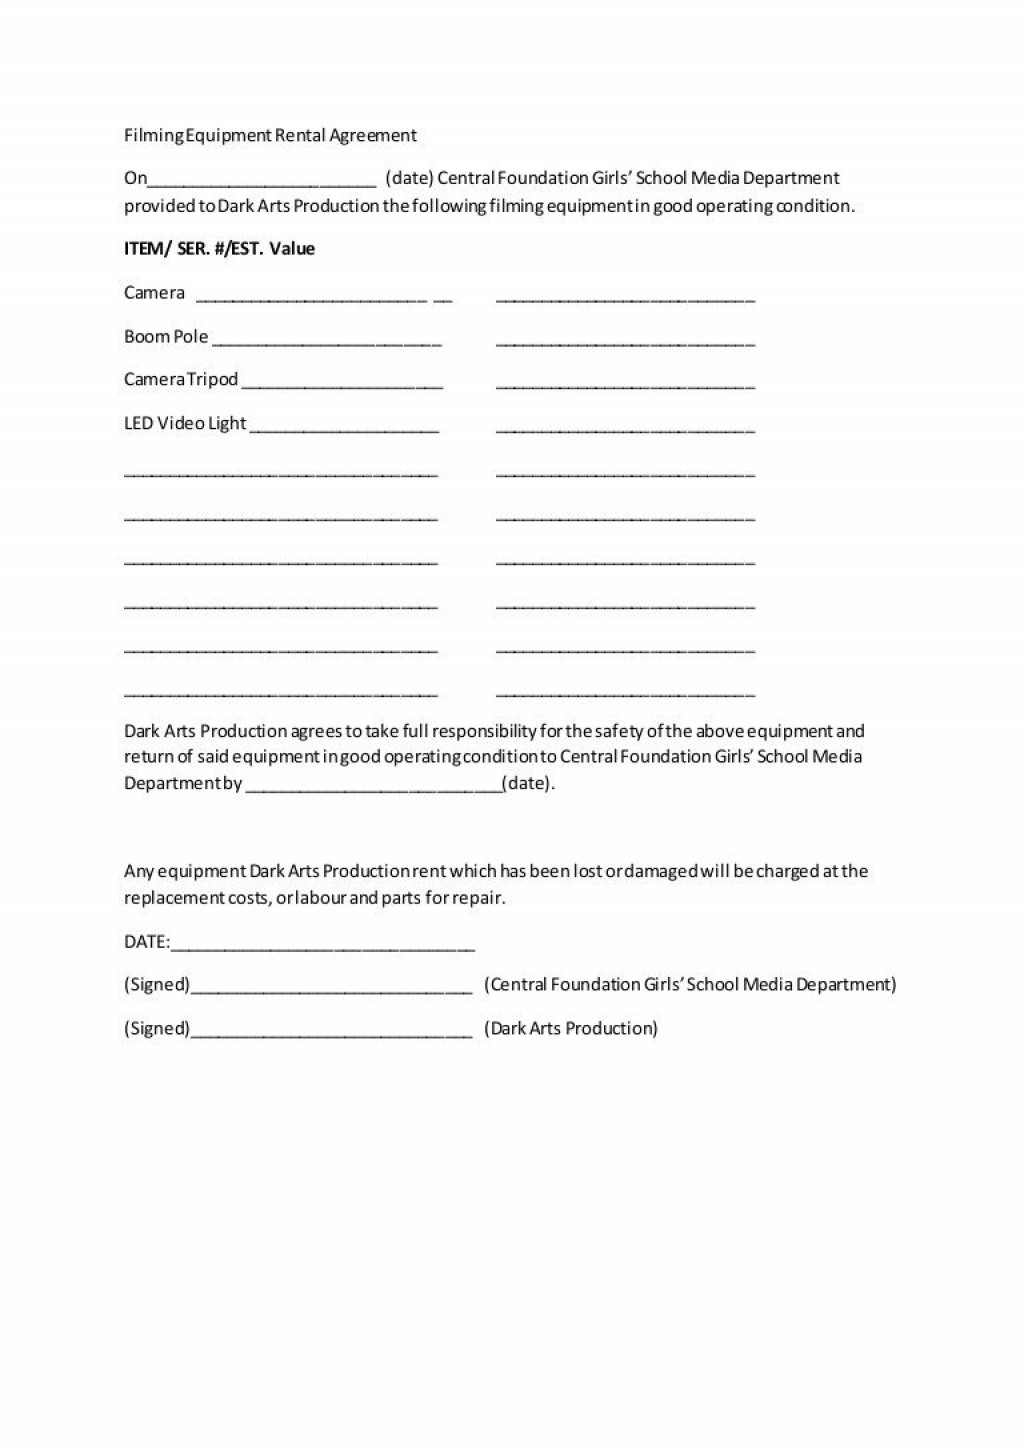 008 Best Equipment Rental Agreement Template Concept  Canada Free South Africa PdfLarge